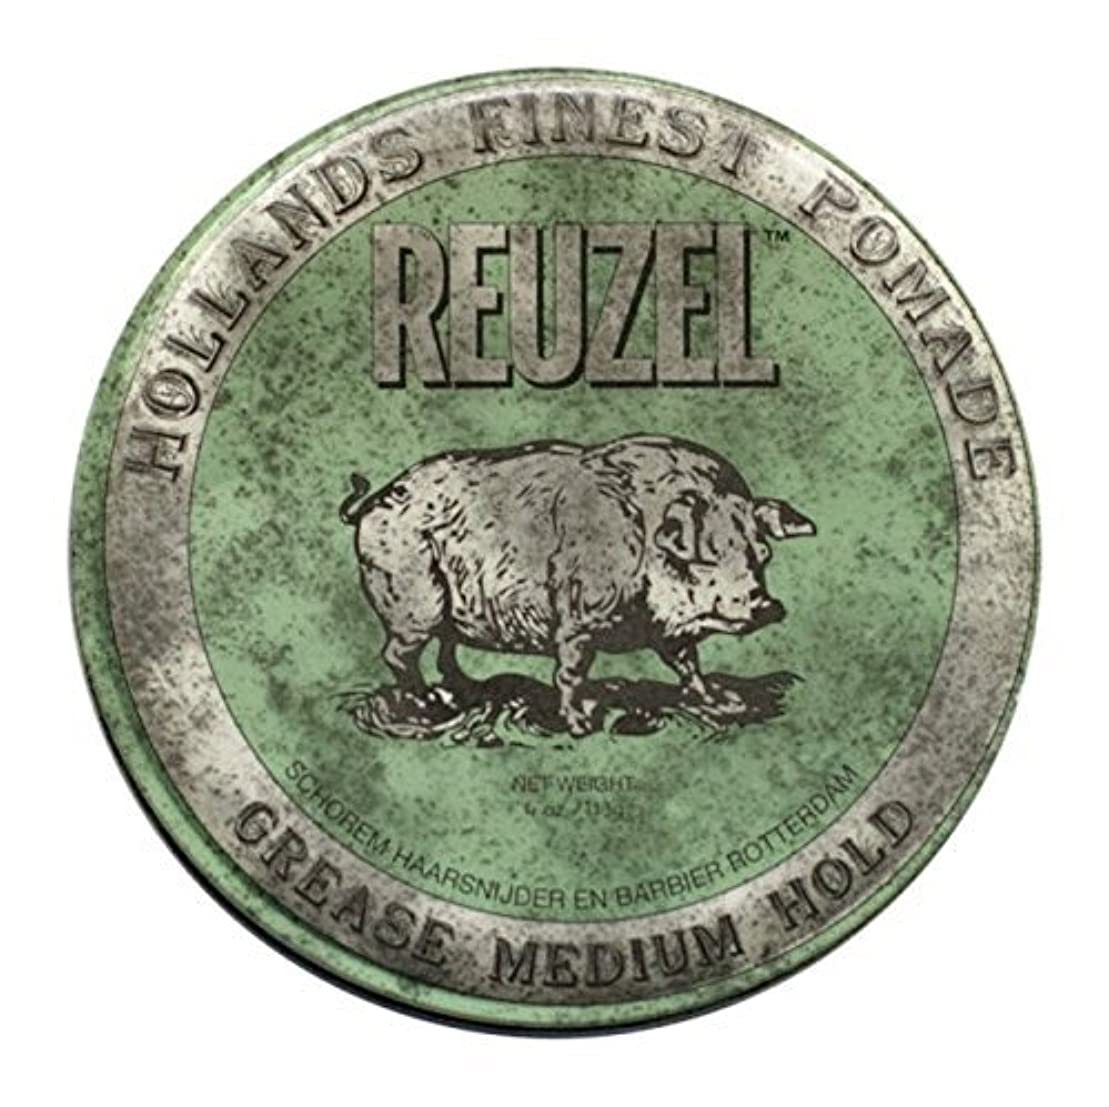 レスリングブラジャー永久にREUZEL Grease Hold Hair Styling Pomade Piglet Wax/Gel, Medium, Green, 1.3 oz, 35g [並行輸入品]